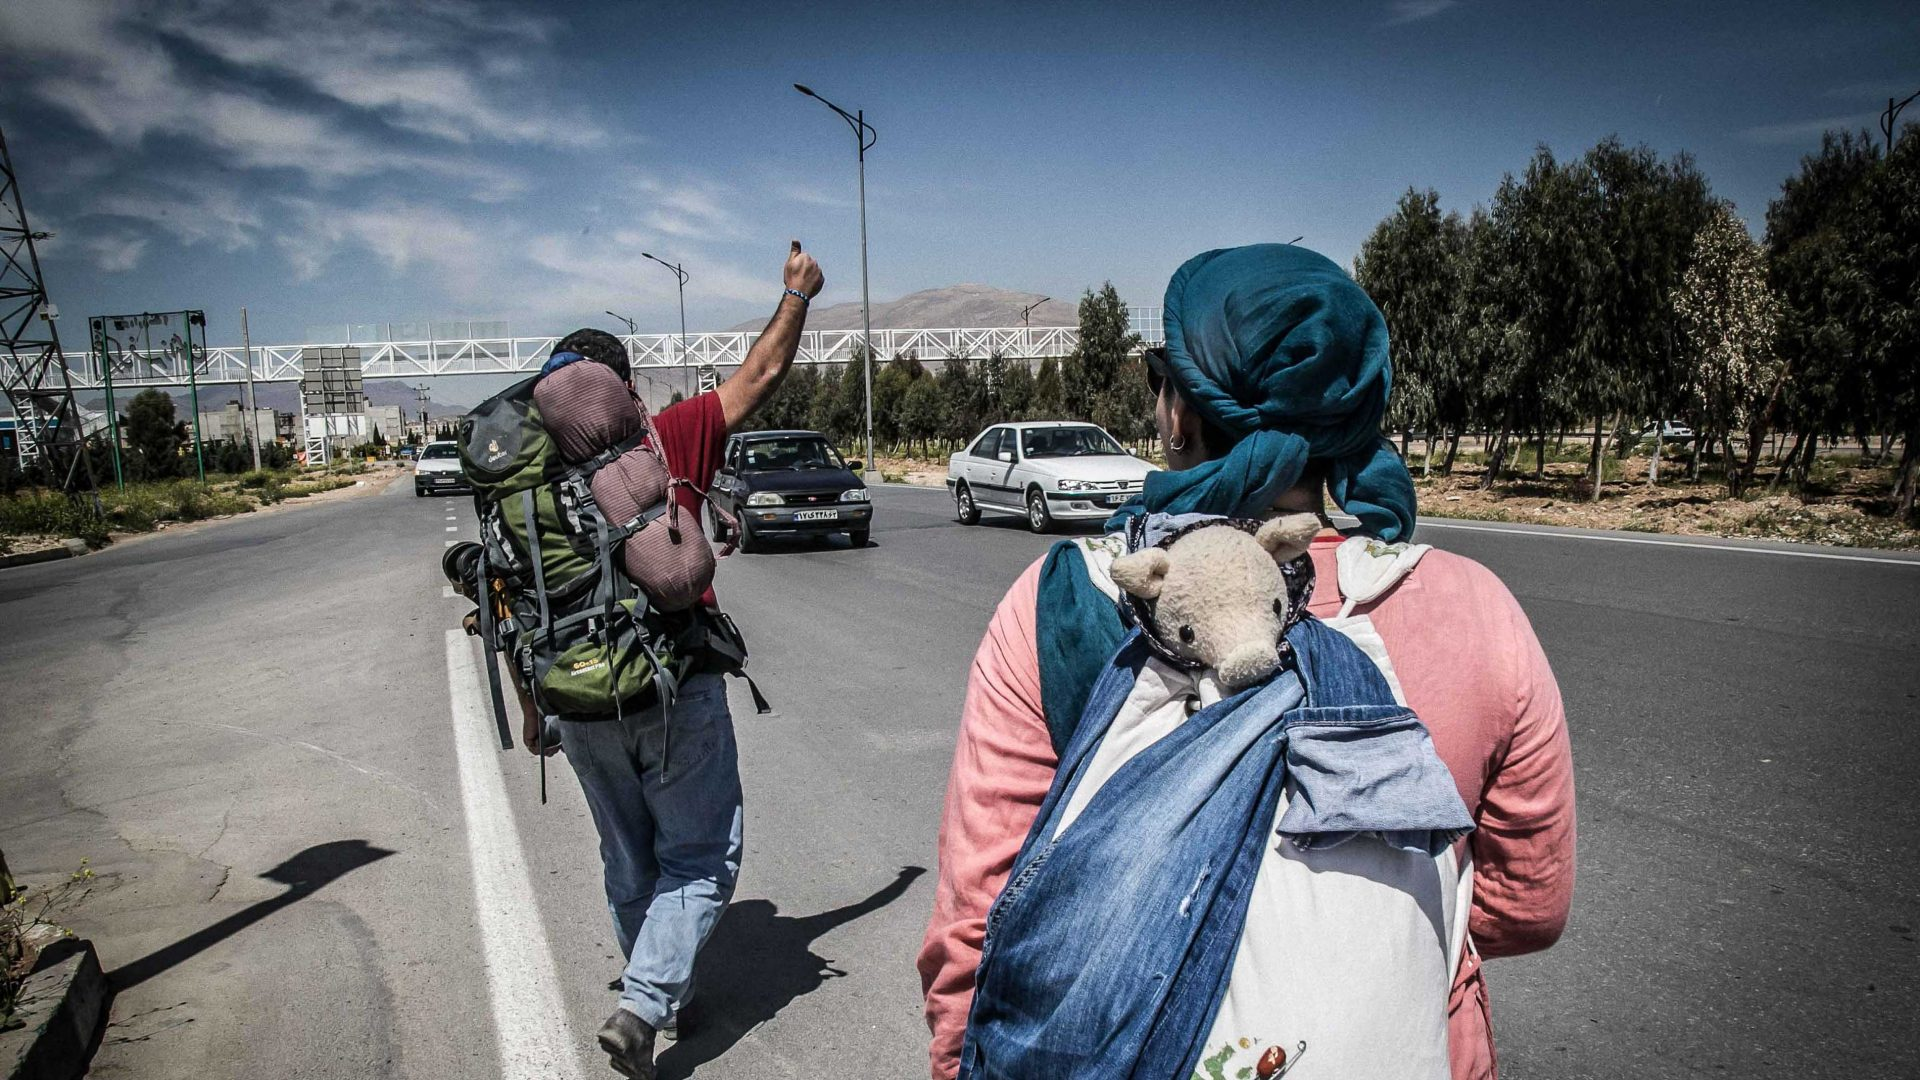 Meet the defiant young Iranians hitchhiking and couchsurfing their way to freedom